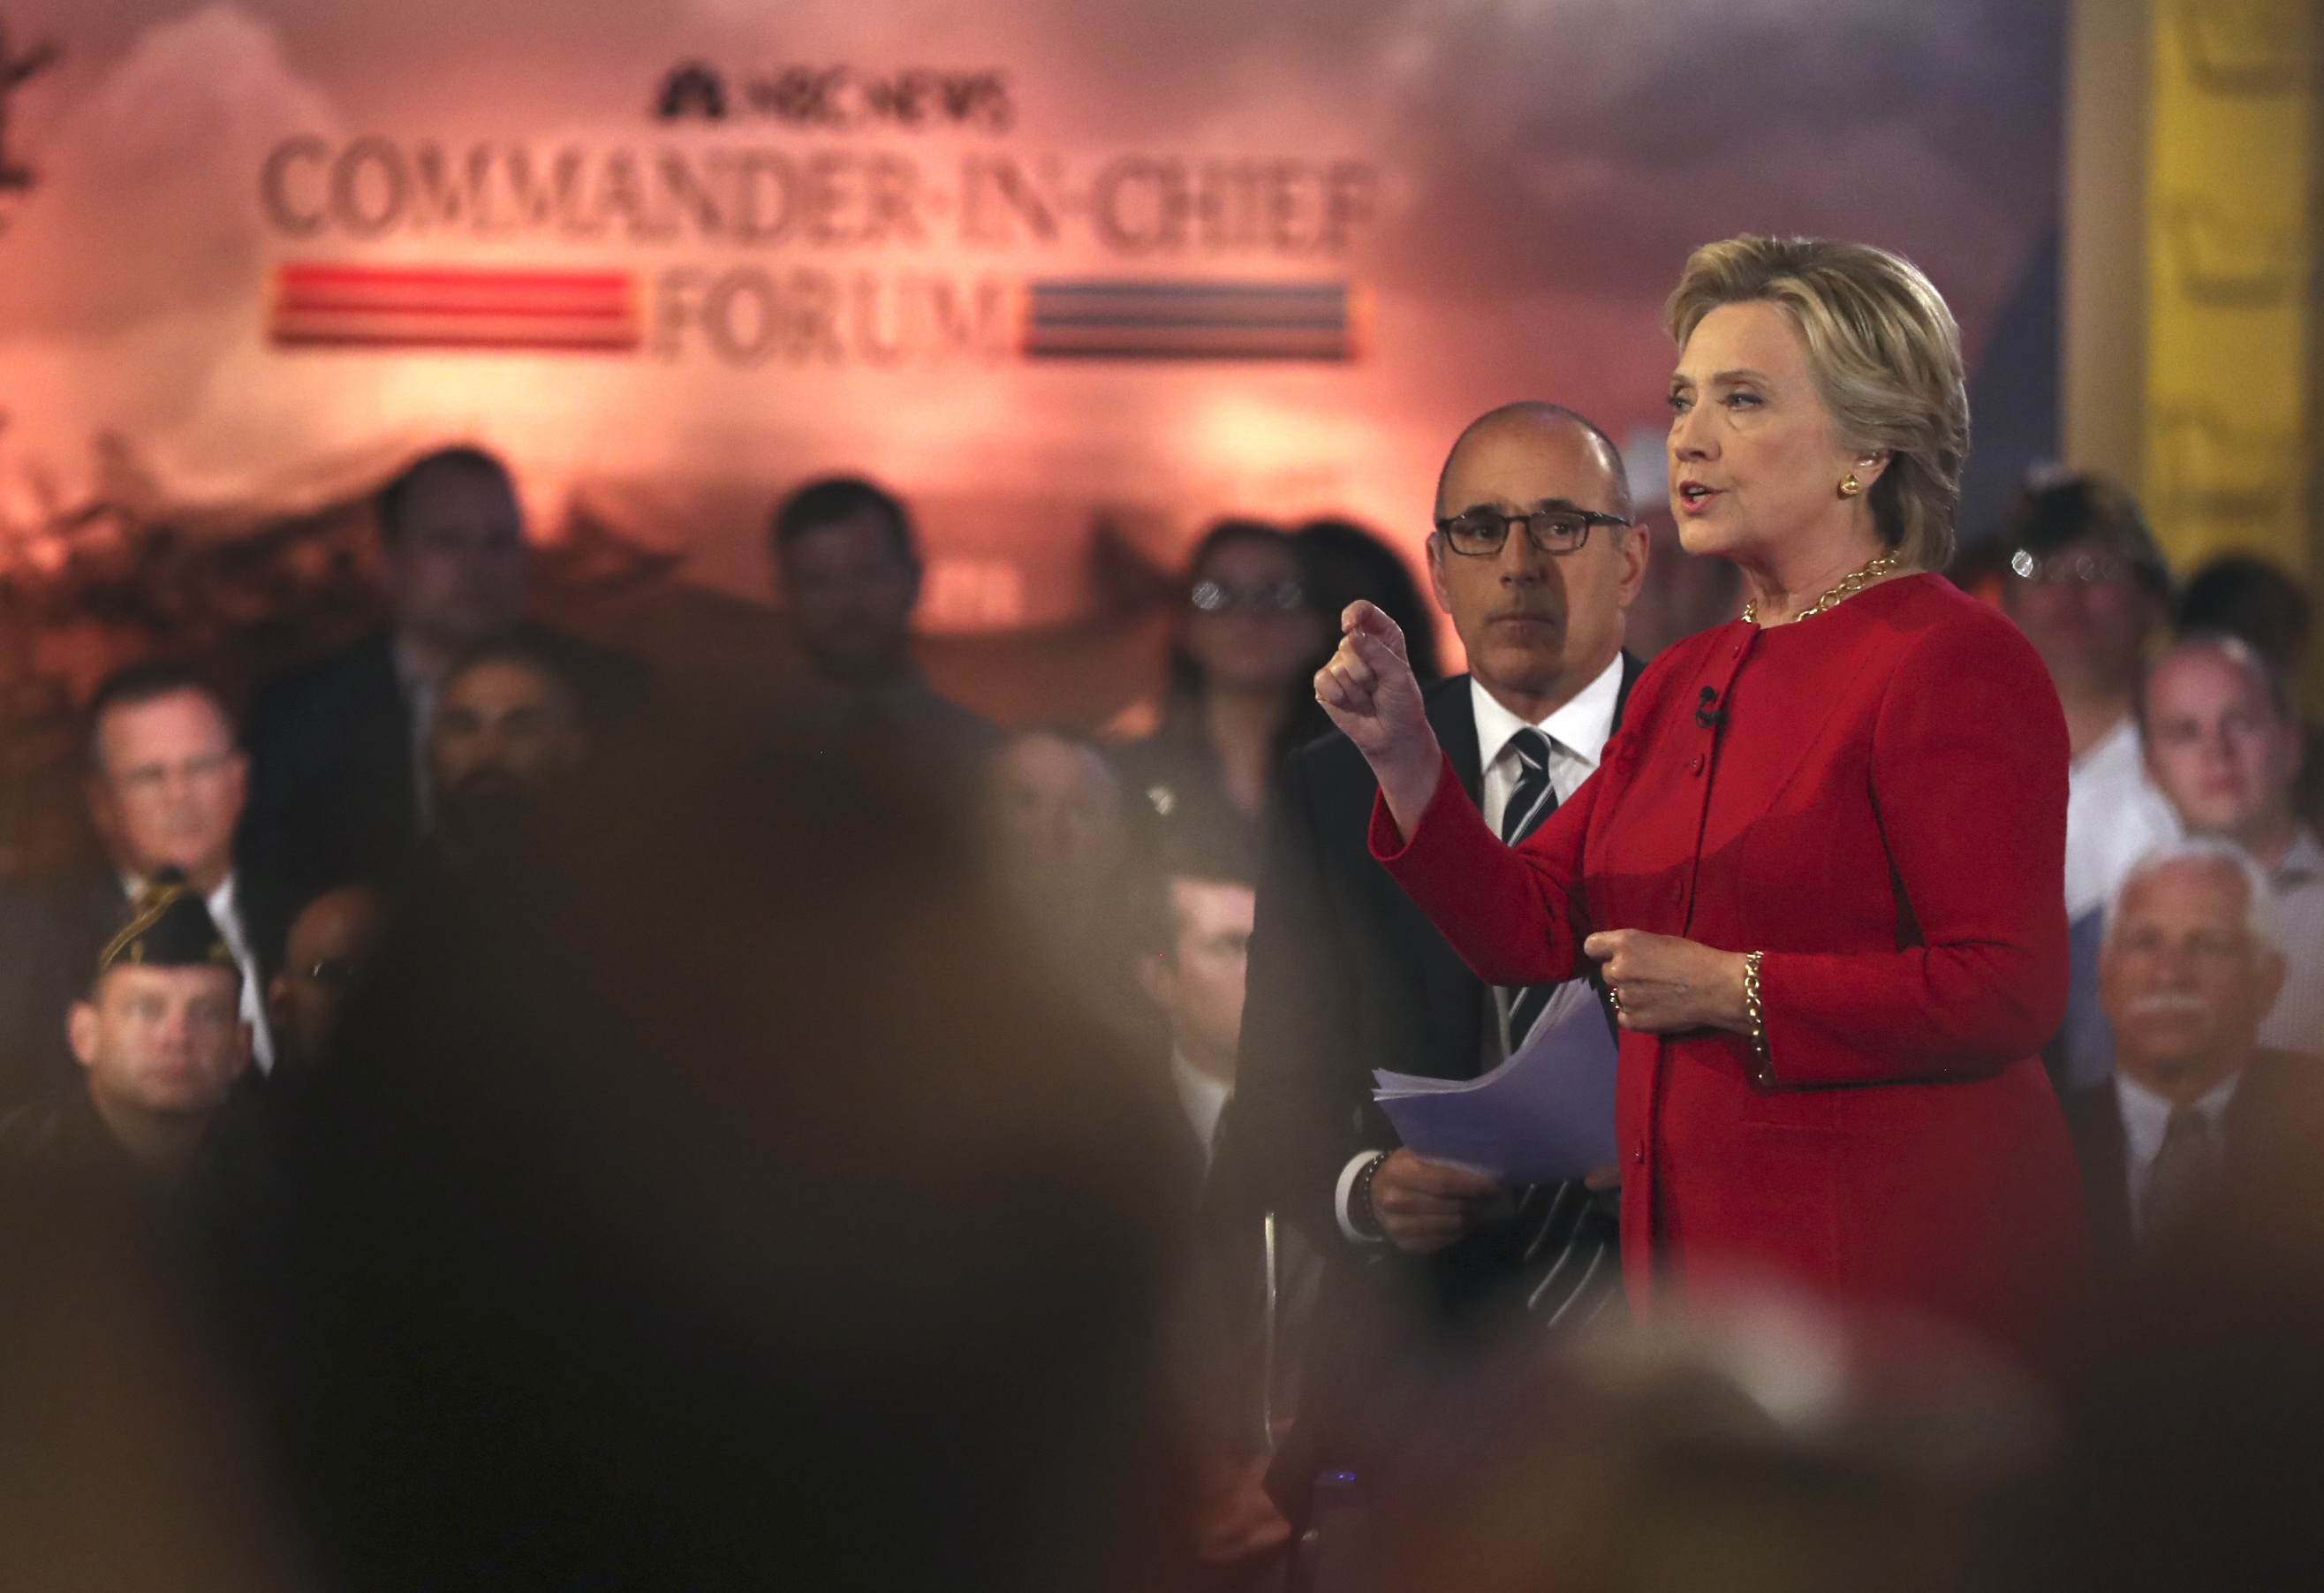 """Democratic presidential candidate Hillary Clinton speaks during a """"commander in chief forum"""" hosted by NBC in New York, Sept. 7, 2016."""